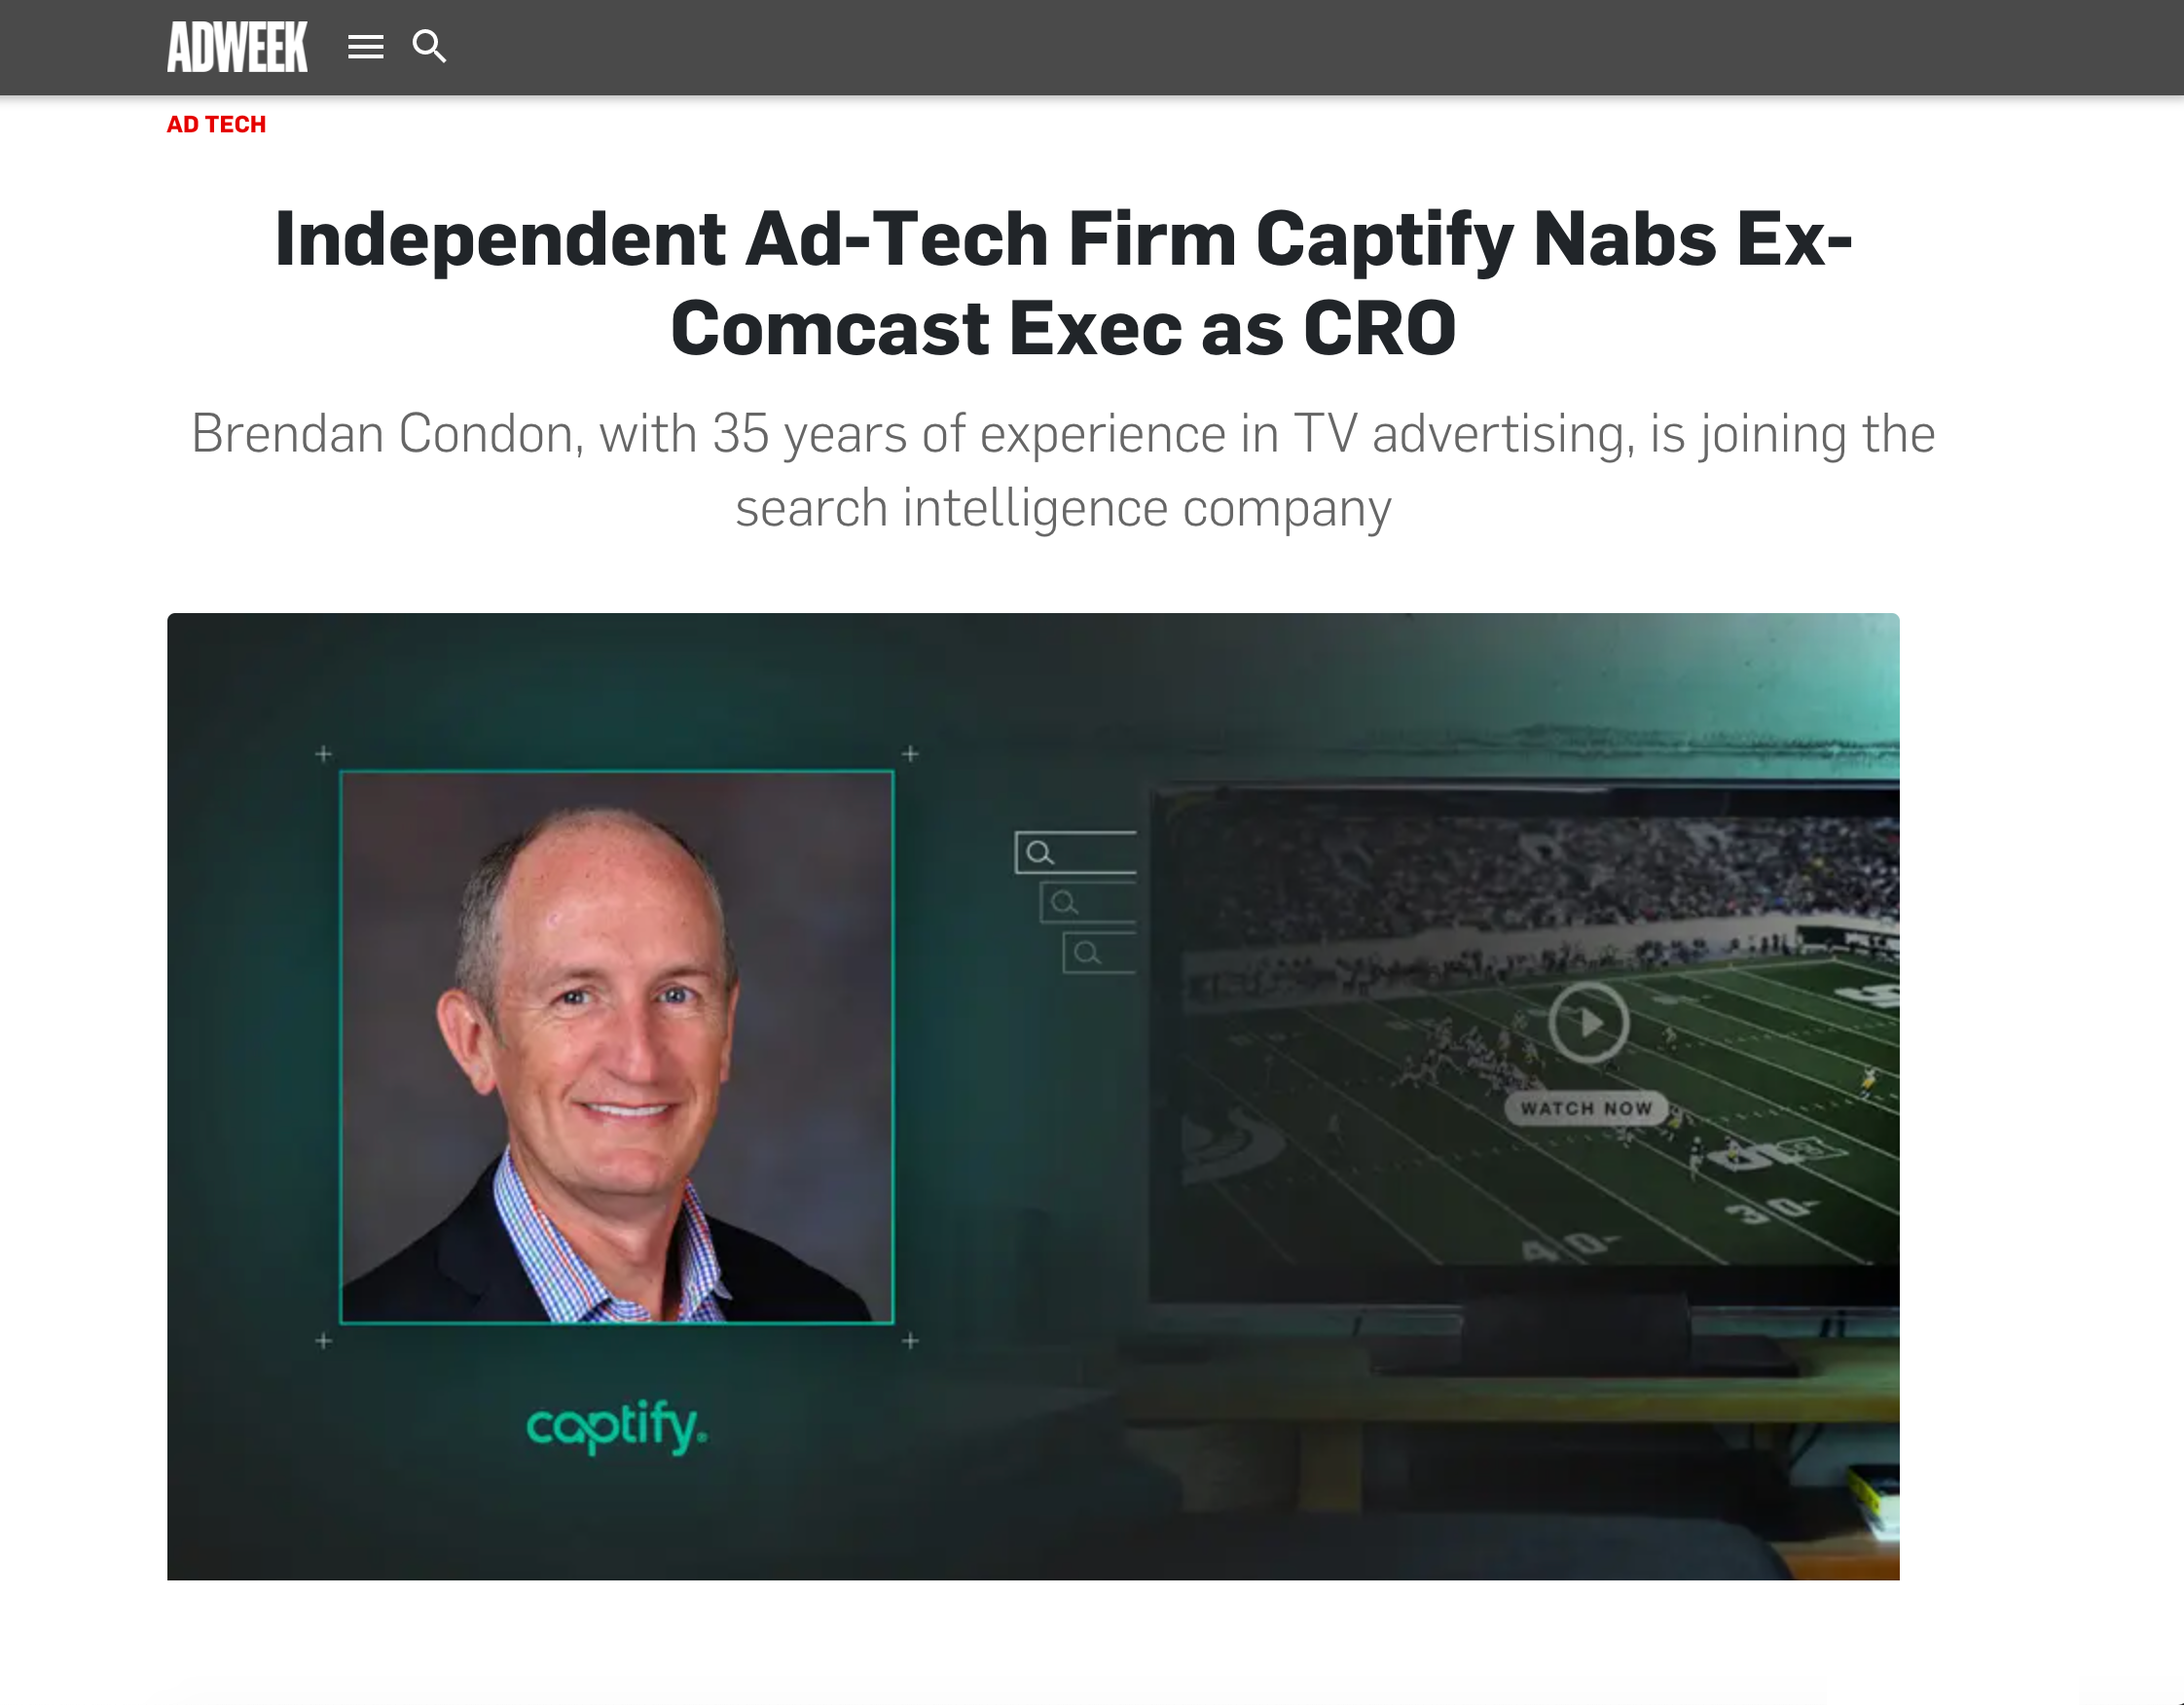 Adweek: Independent Ad-Tech Firm Captify Nabs Ex-Comcast Exec, Brendan Condon as CRO